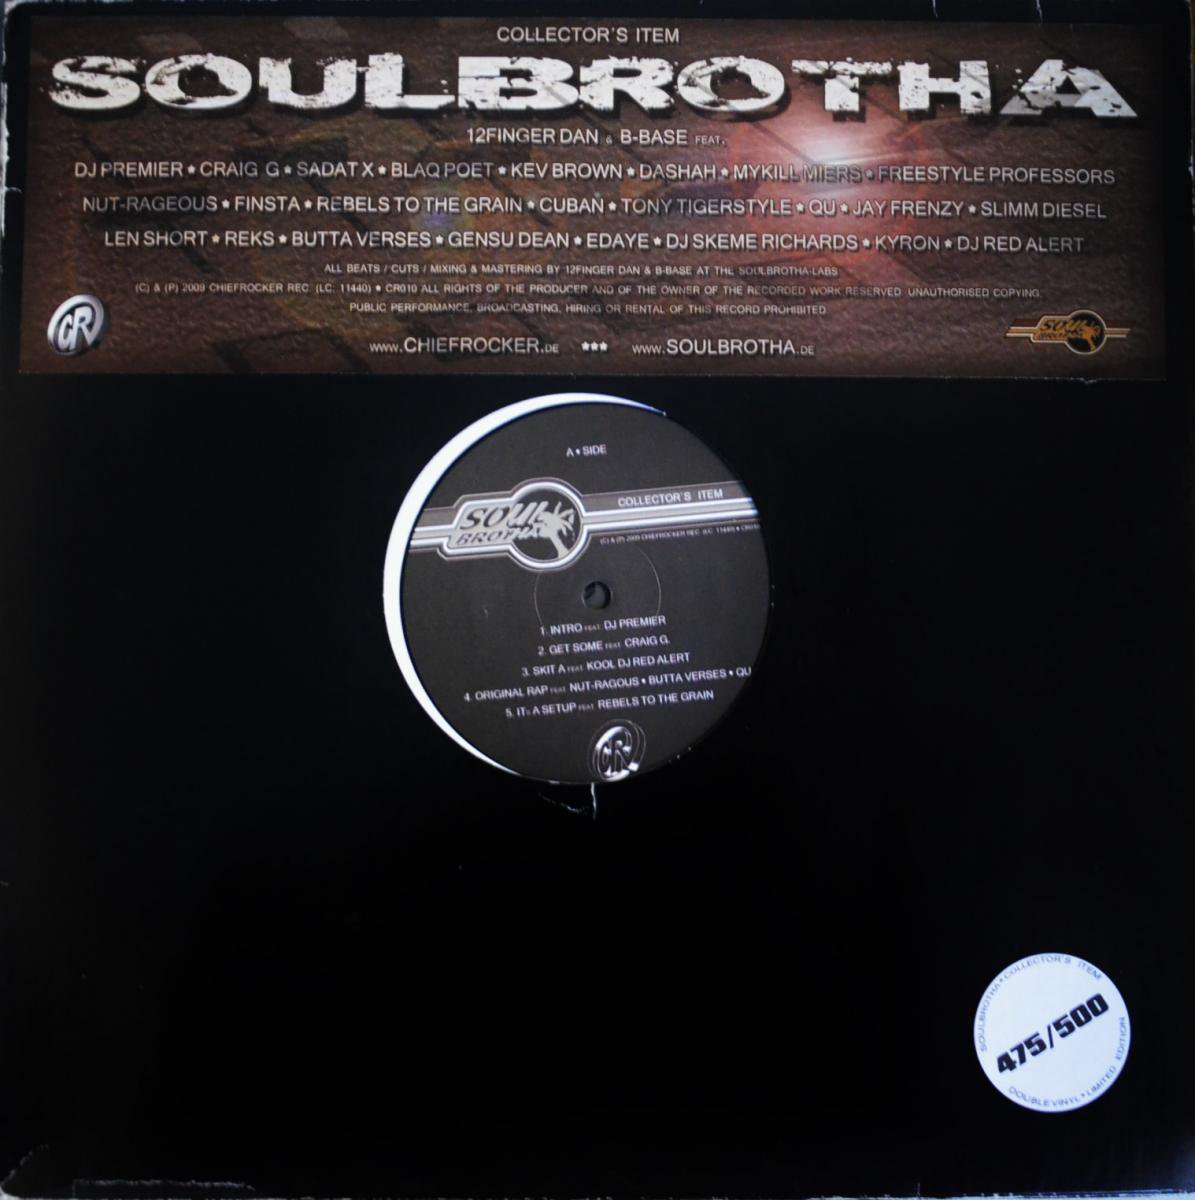 SOULBROTHA / COLLECTOR'S ITEM (2LP)